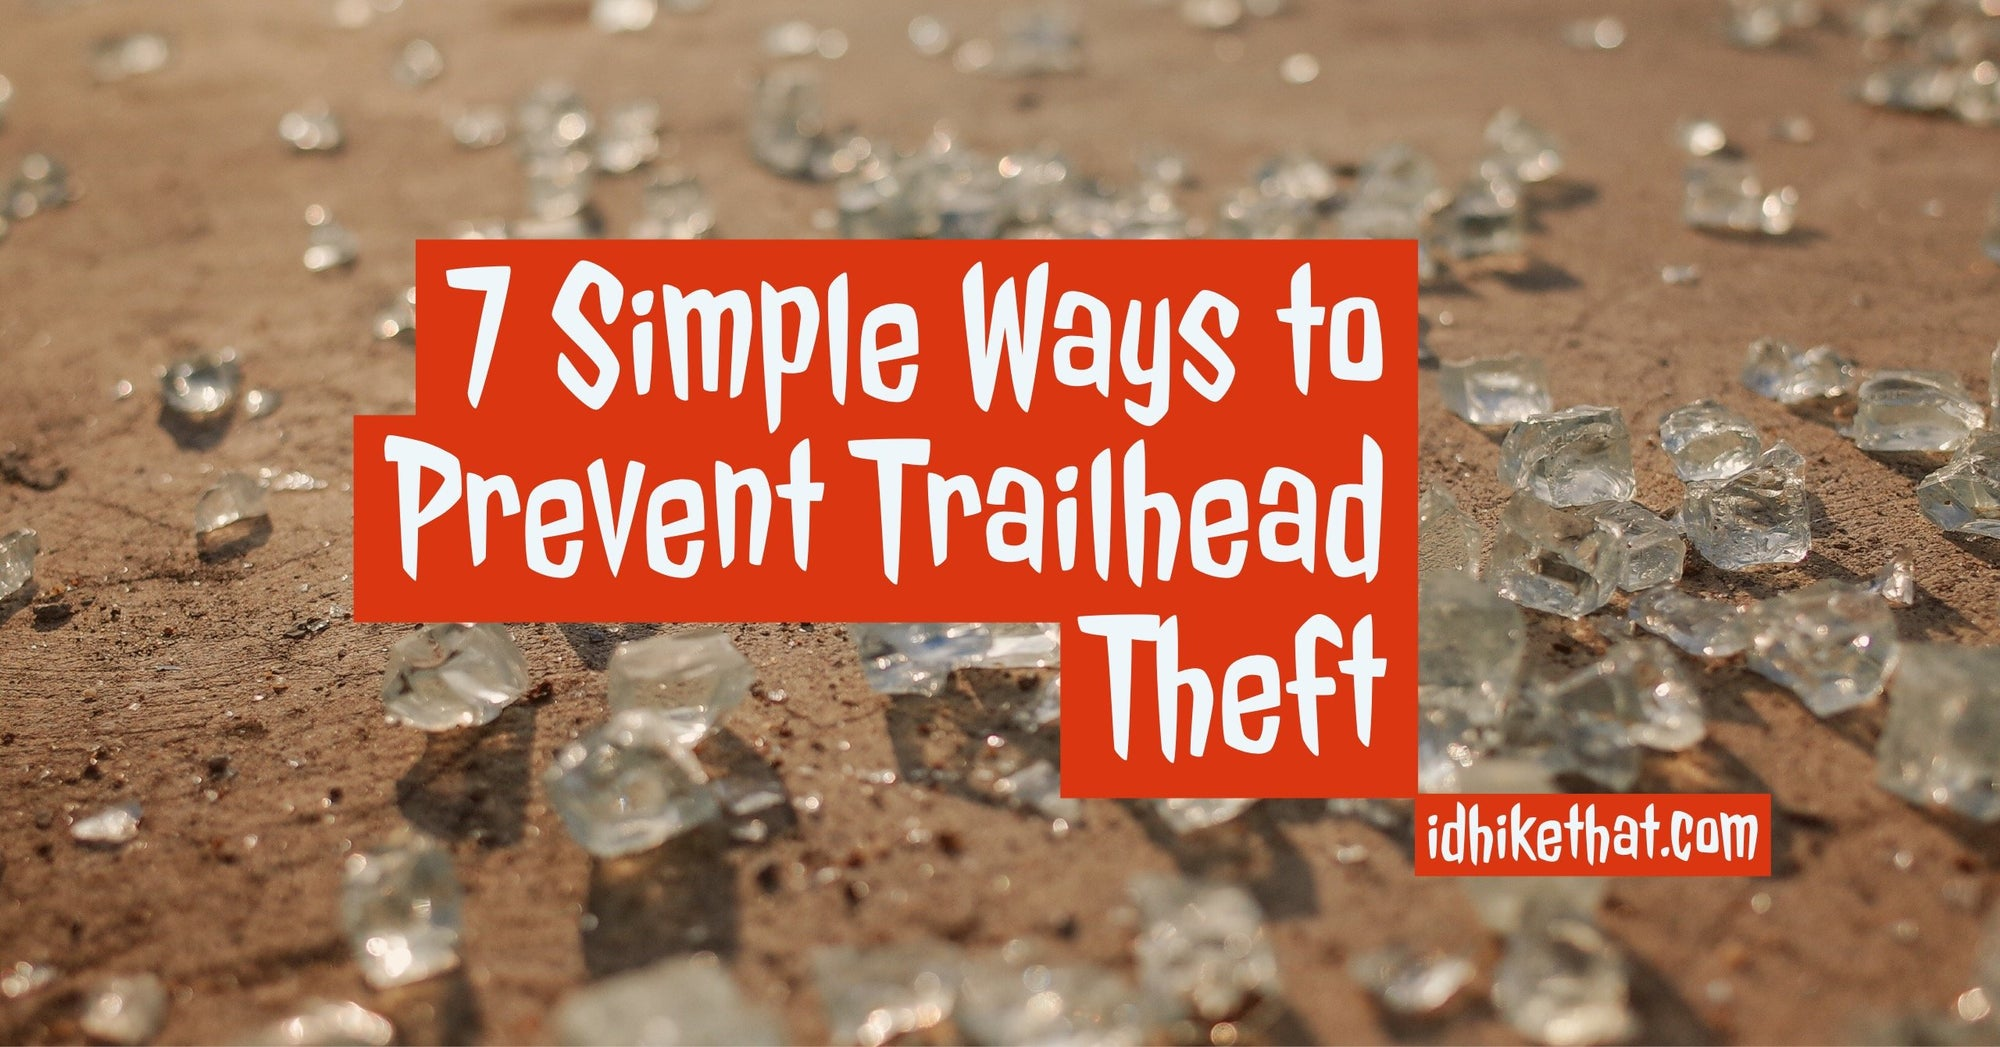 7 Simple Ways to Prevent Trailhead Theft. Visit idhikethat.com to find out how to avoid this disaster.